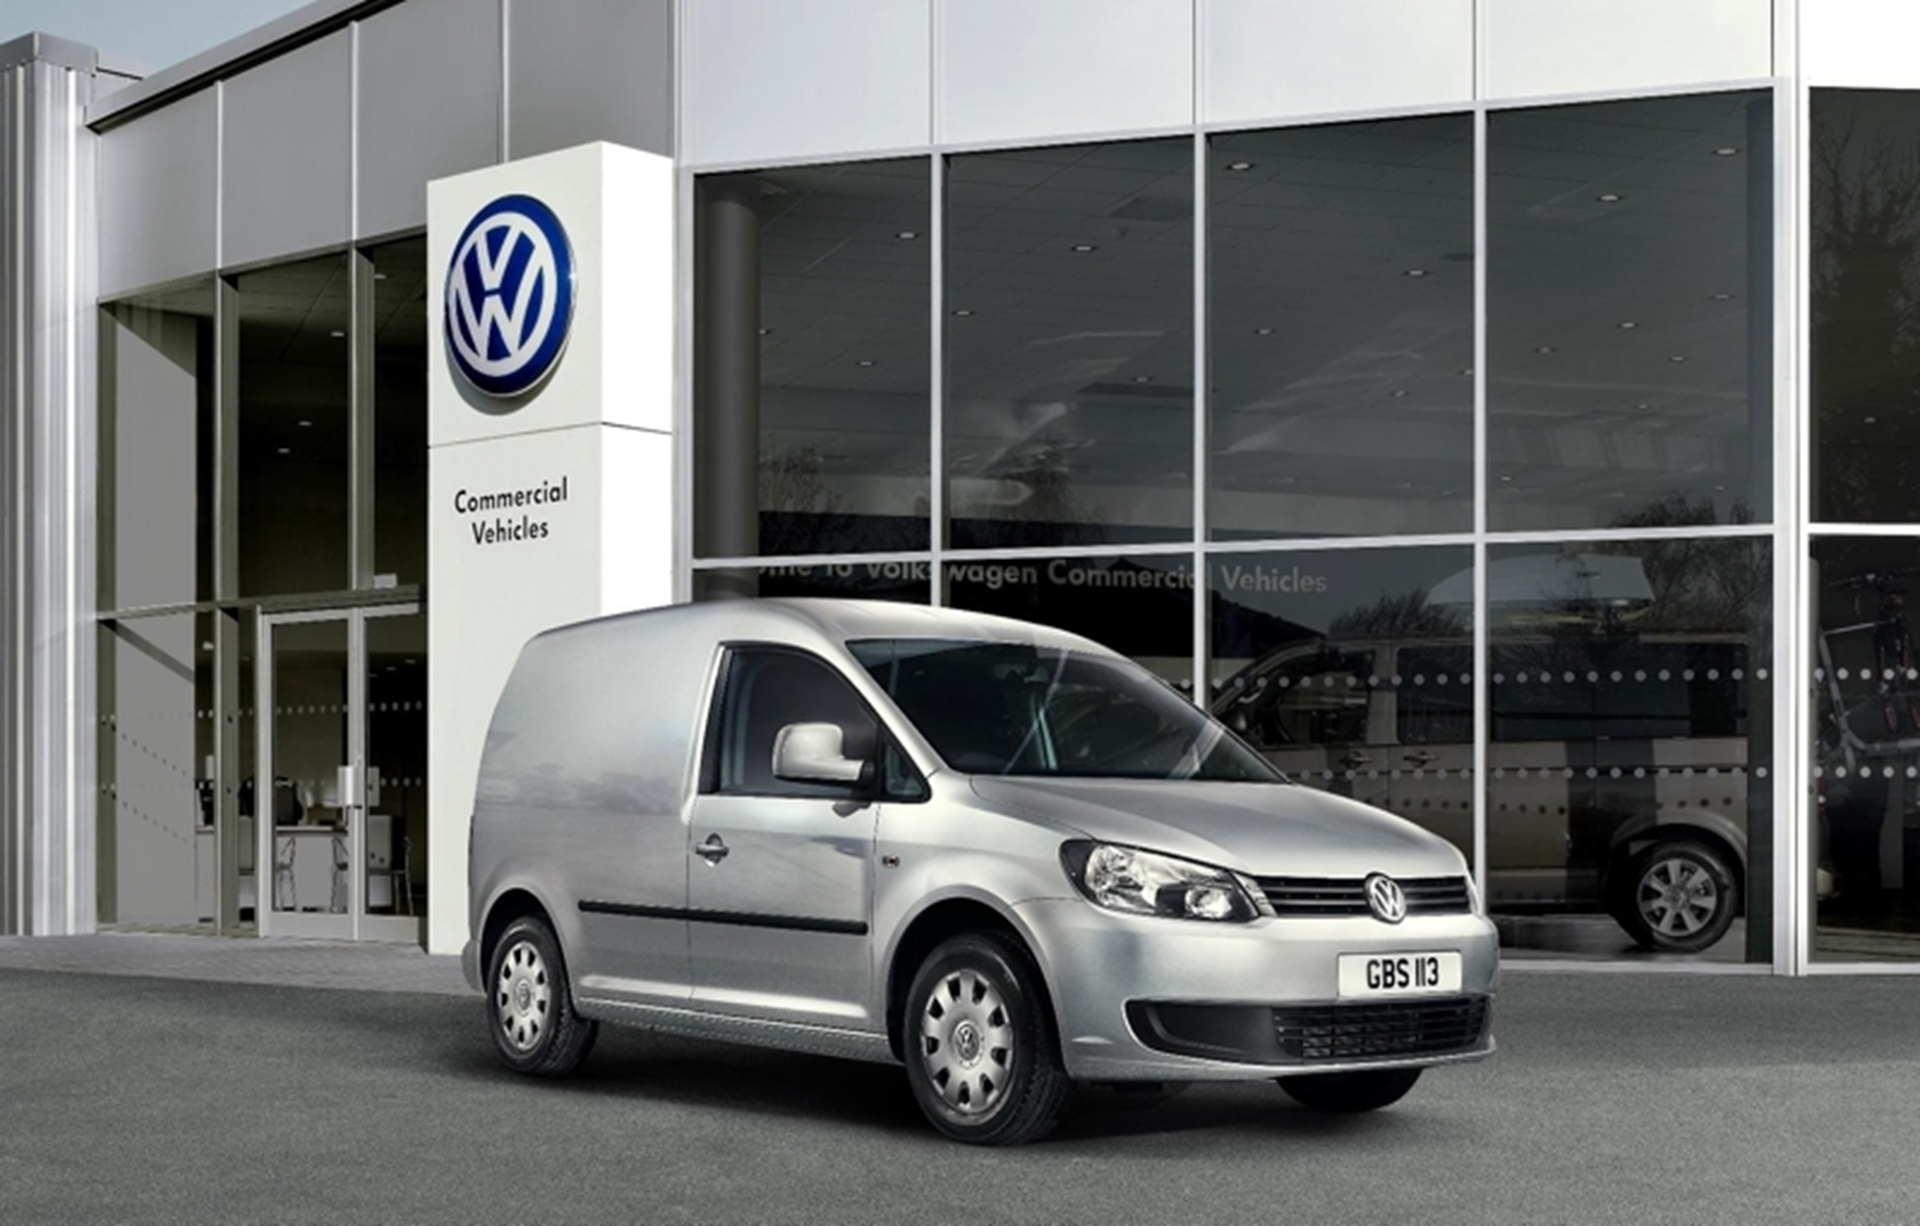 VOLKSWAGEN SPECIAL FINANCE OFFERS FOR THE CADDY MATCH SPECIAL EDITION #303C61